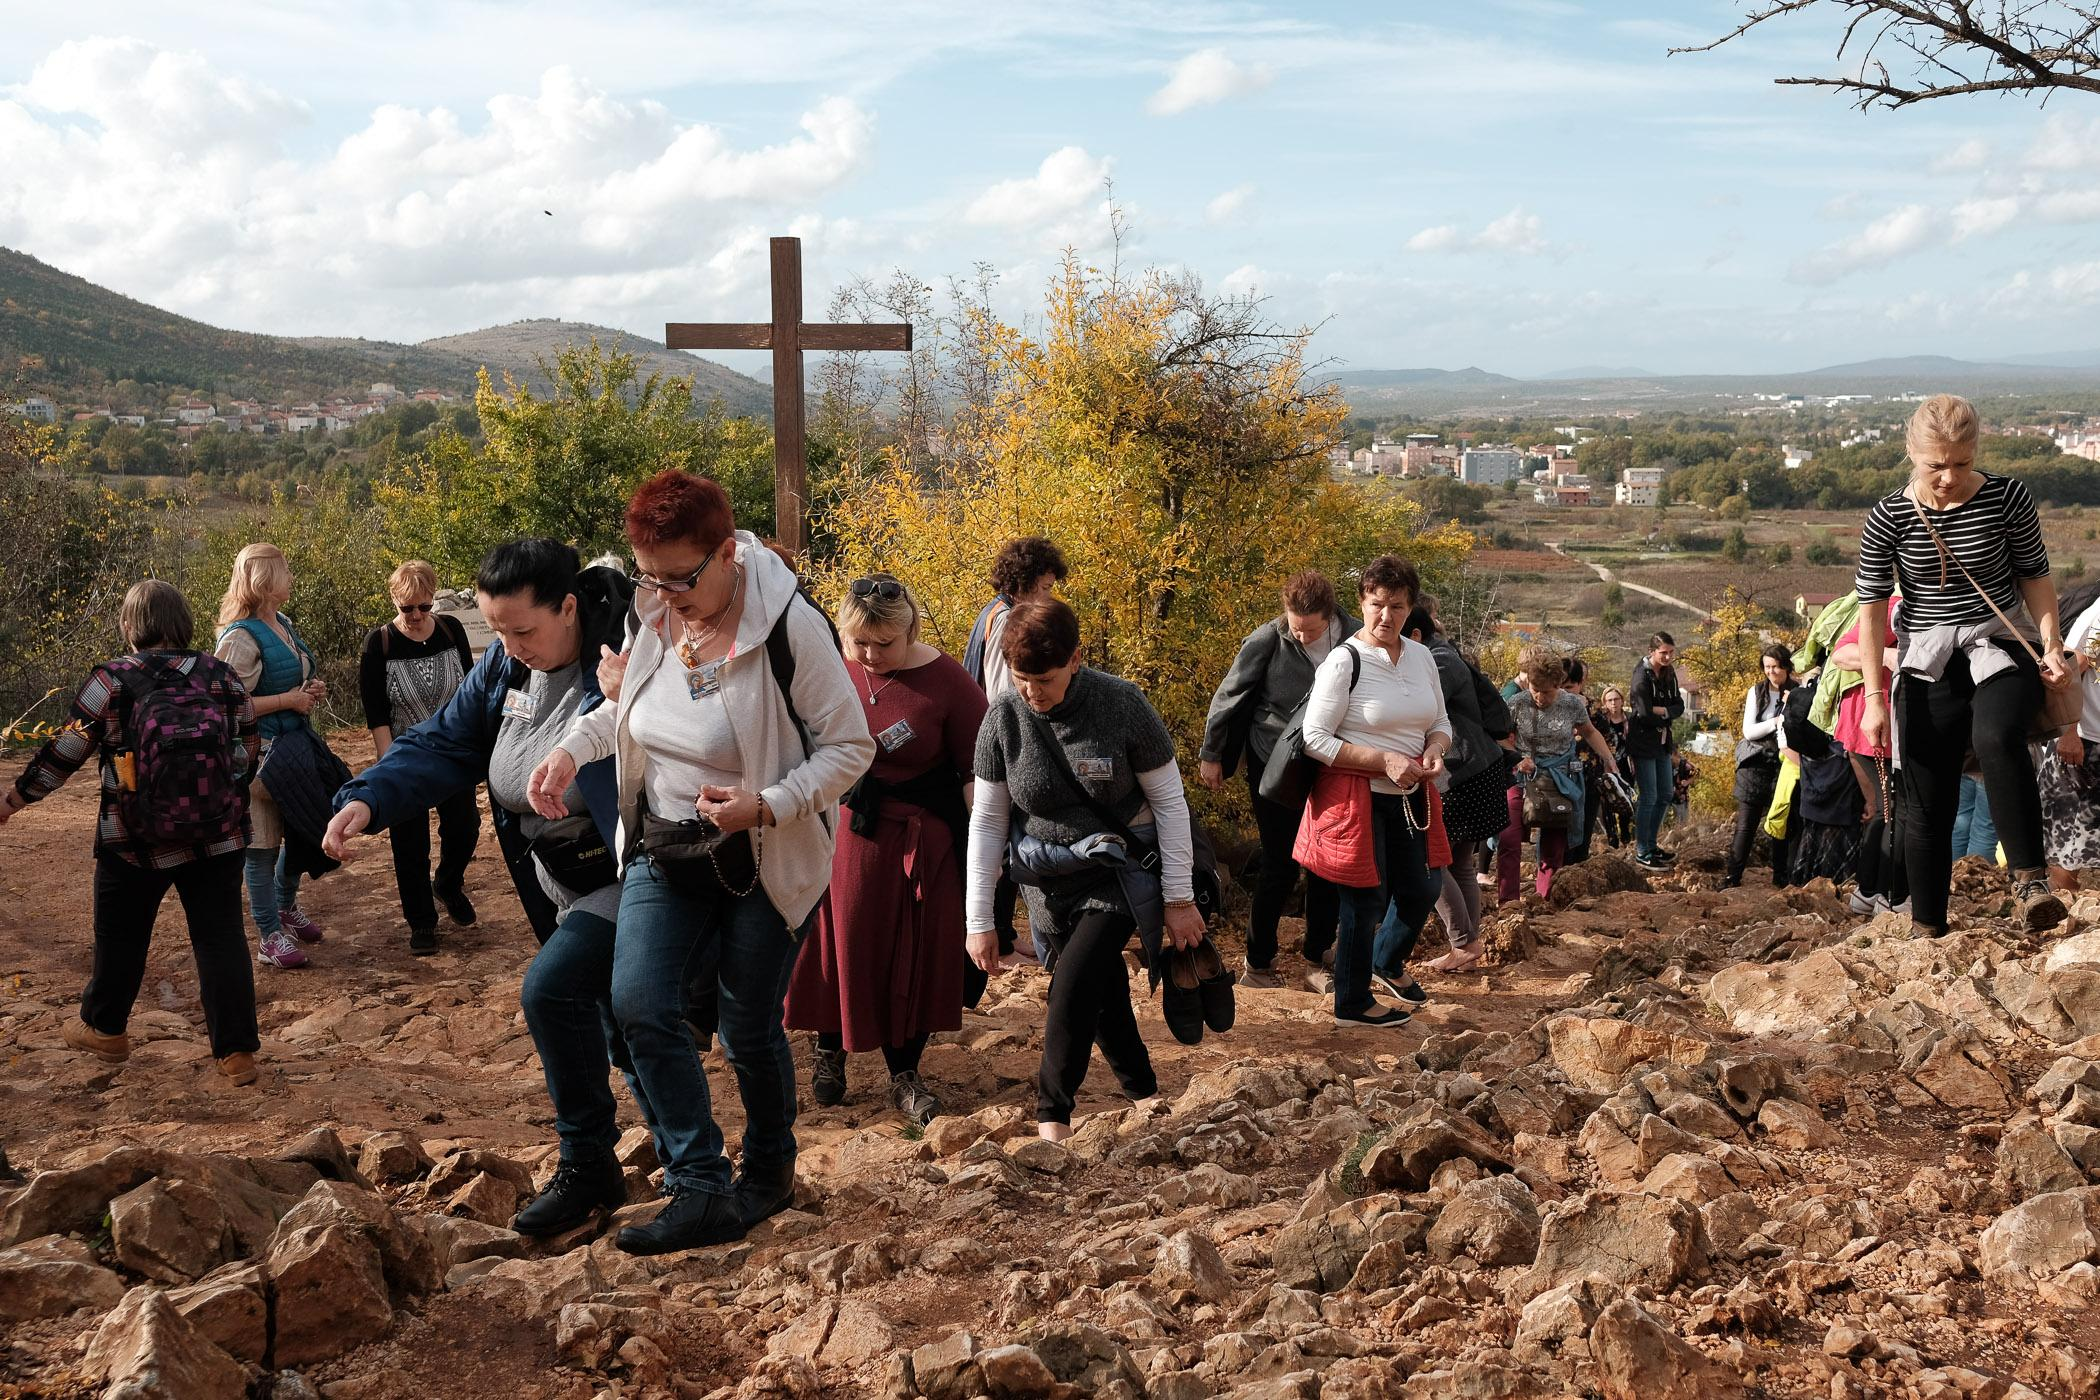 A group of Polish pilgrims treks up Apparition Hill on the outskirts of Medjugorje, Bosnia and Herzegovina, November 2019. In 1981, six local teenagers reported a visitation by the Virgin Mary, and have continued to experience regular communications with Her.